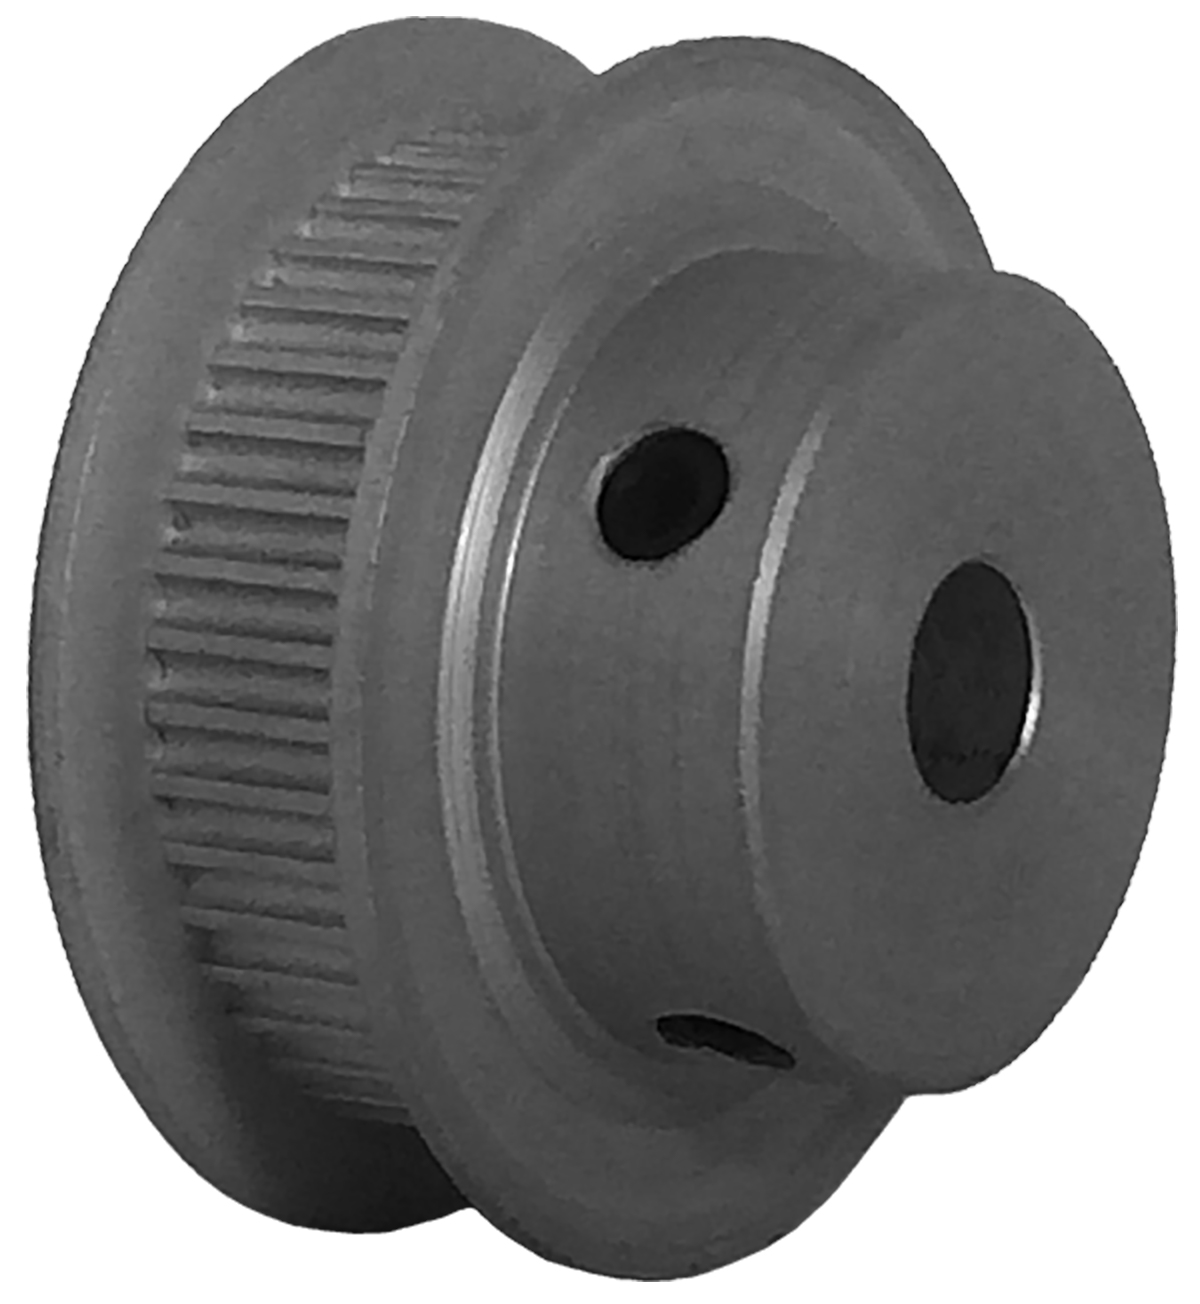 44-2P06-6FA3 - Aluminum Powerhouse® Pulleys